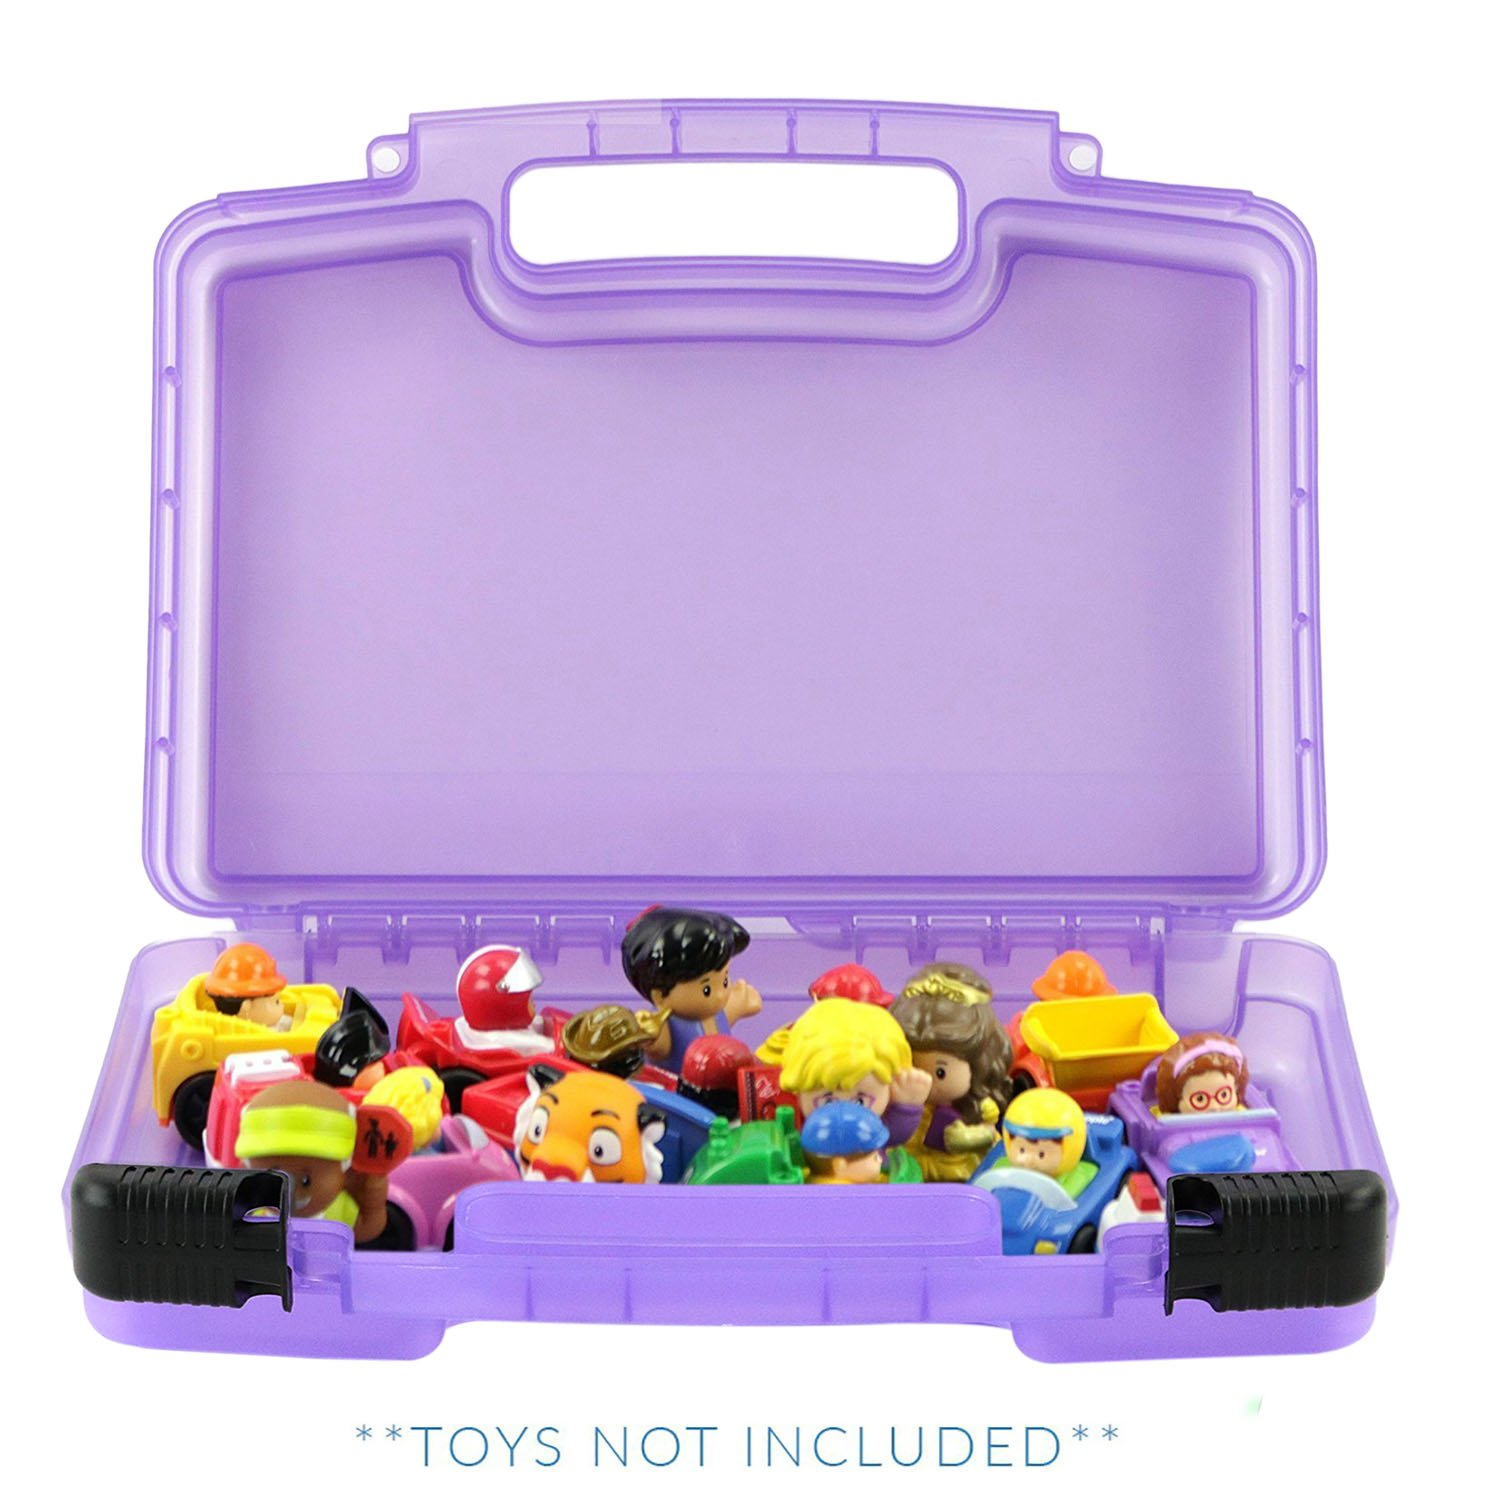 Life Made Better Little People Toy Storage Carrying Box, Mini Figure Organizer, Stores Figurines and Accessories, Purple lmb